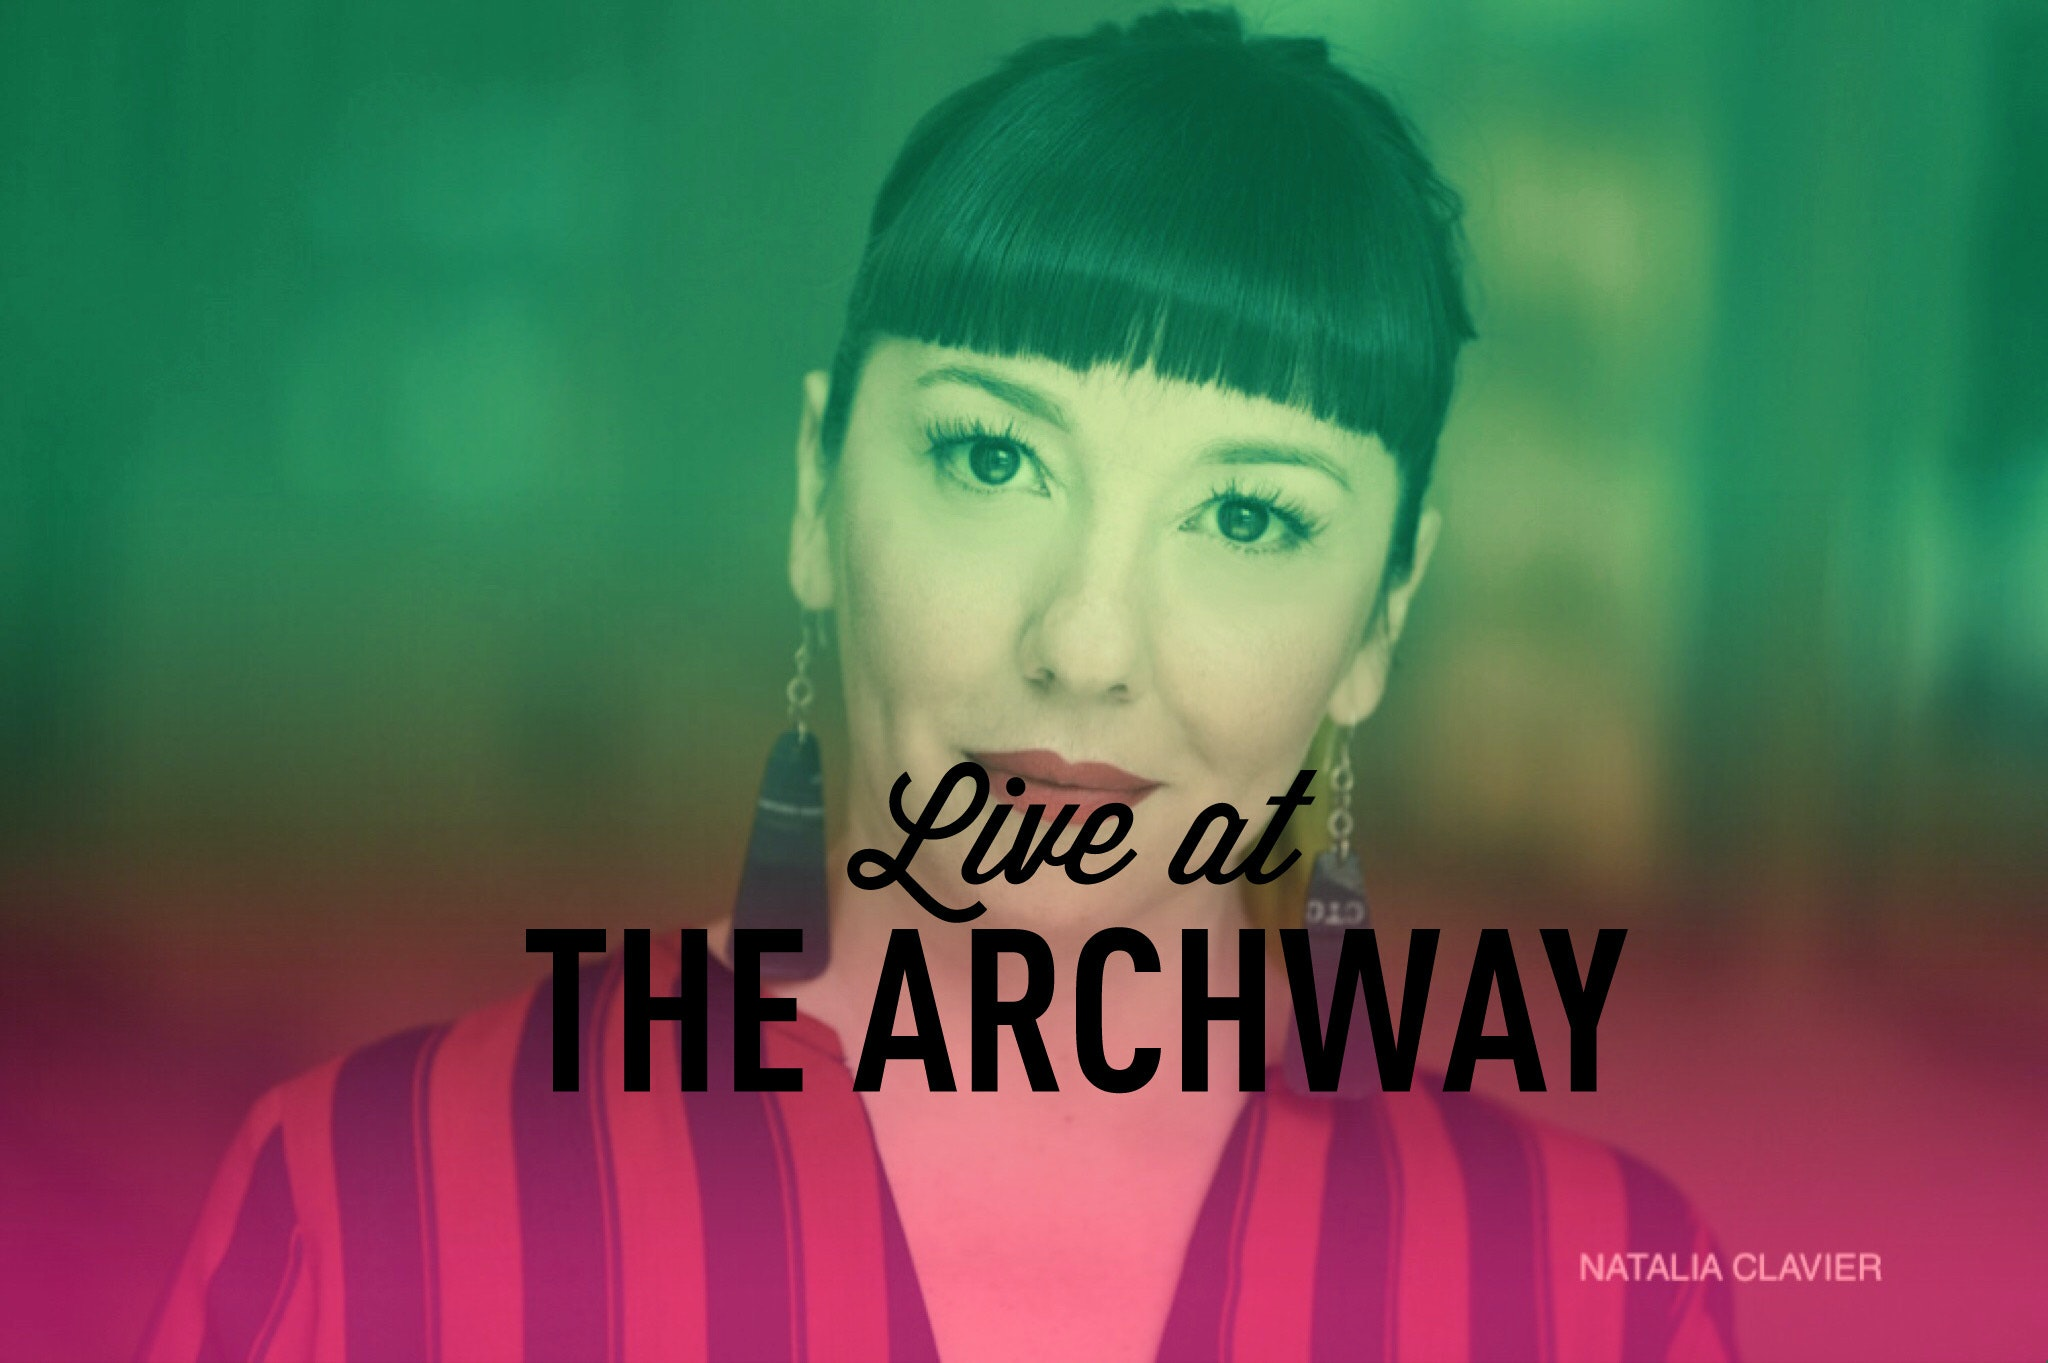 6/21 | Live at the Archway: Natalia Clavier